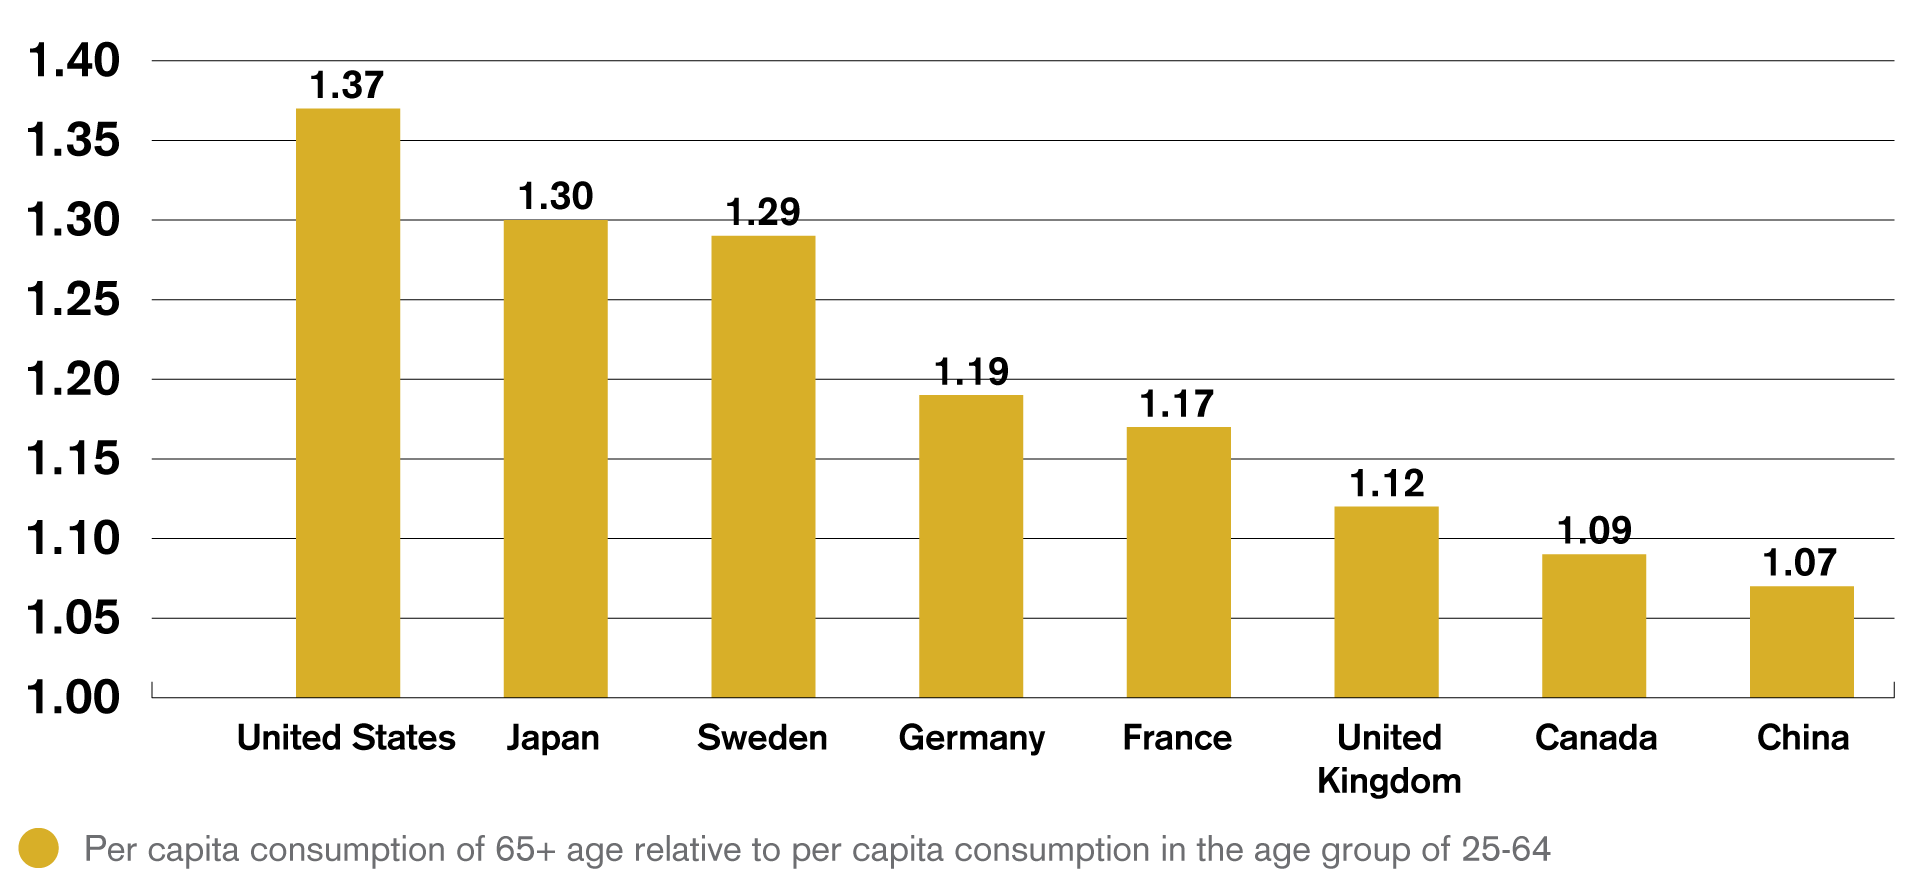 Consumption by seniors is significantly higher than for active population